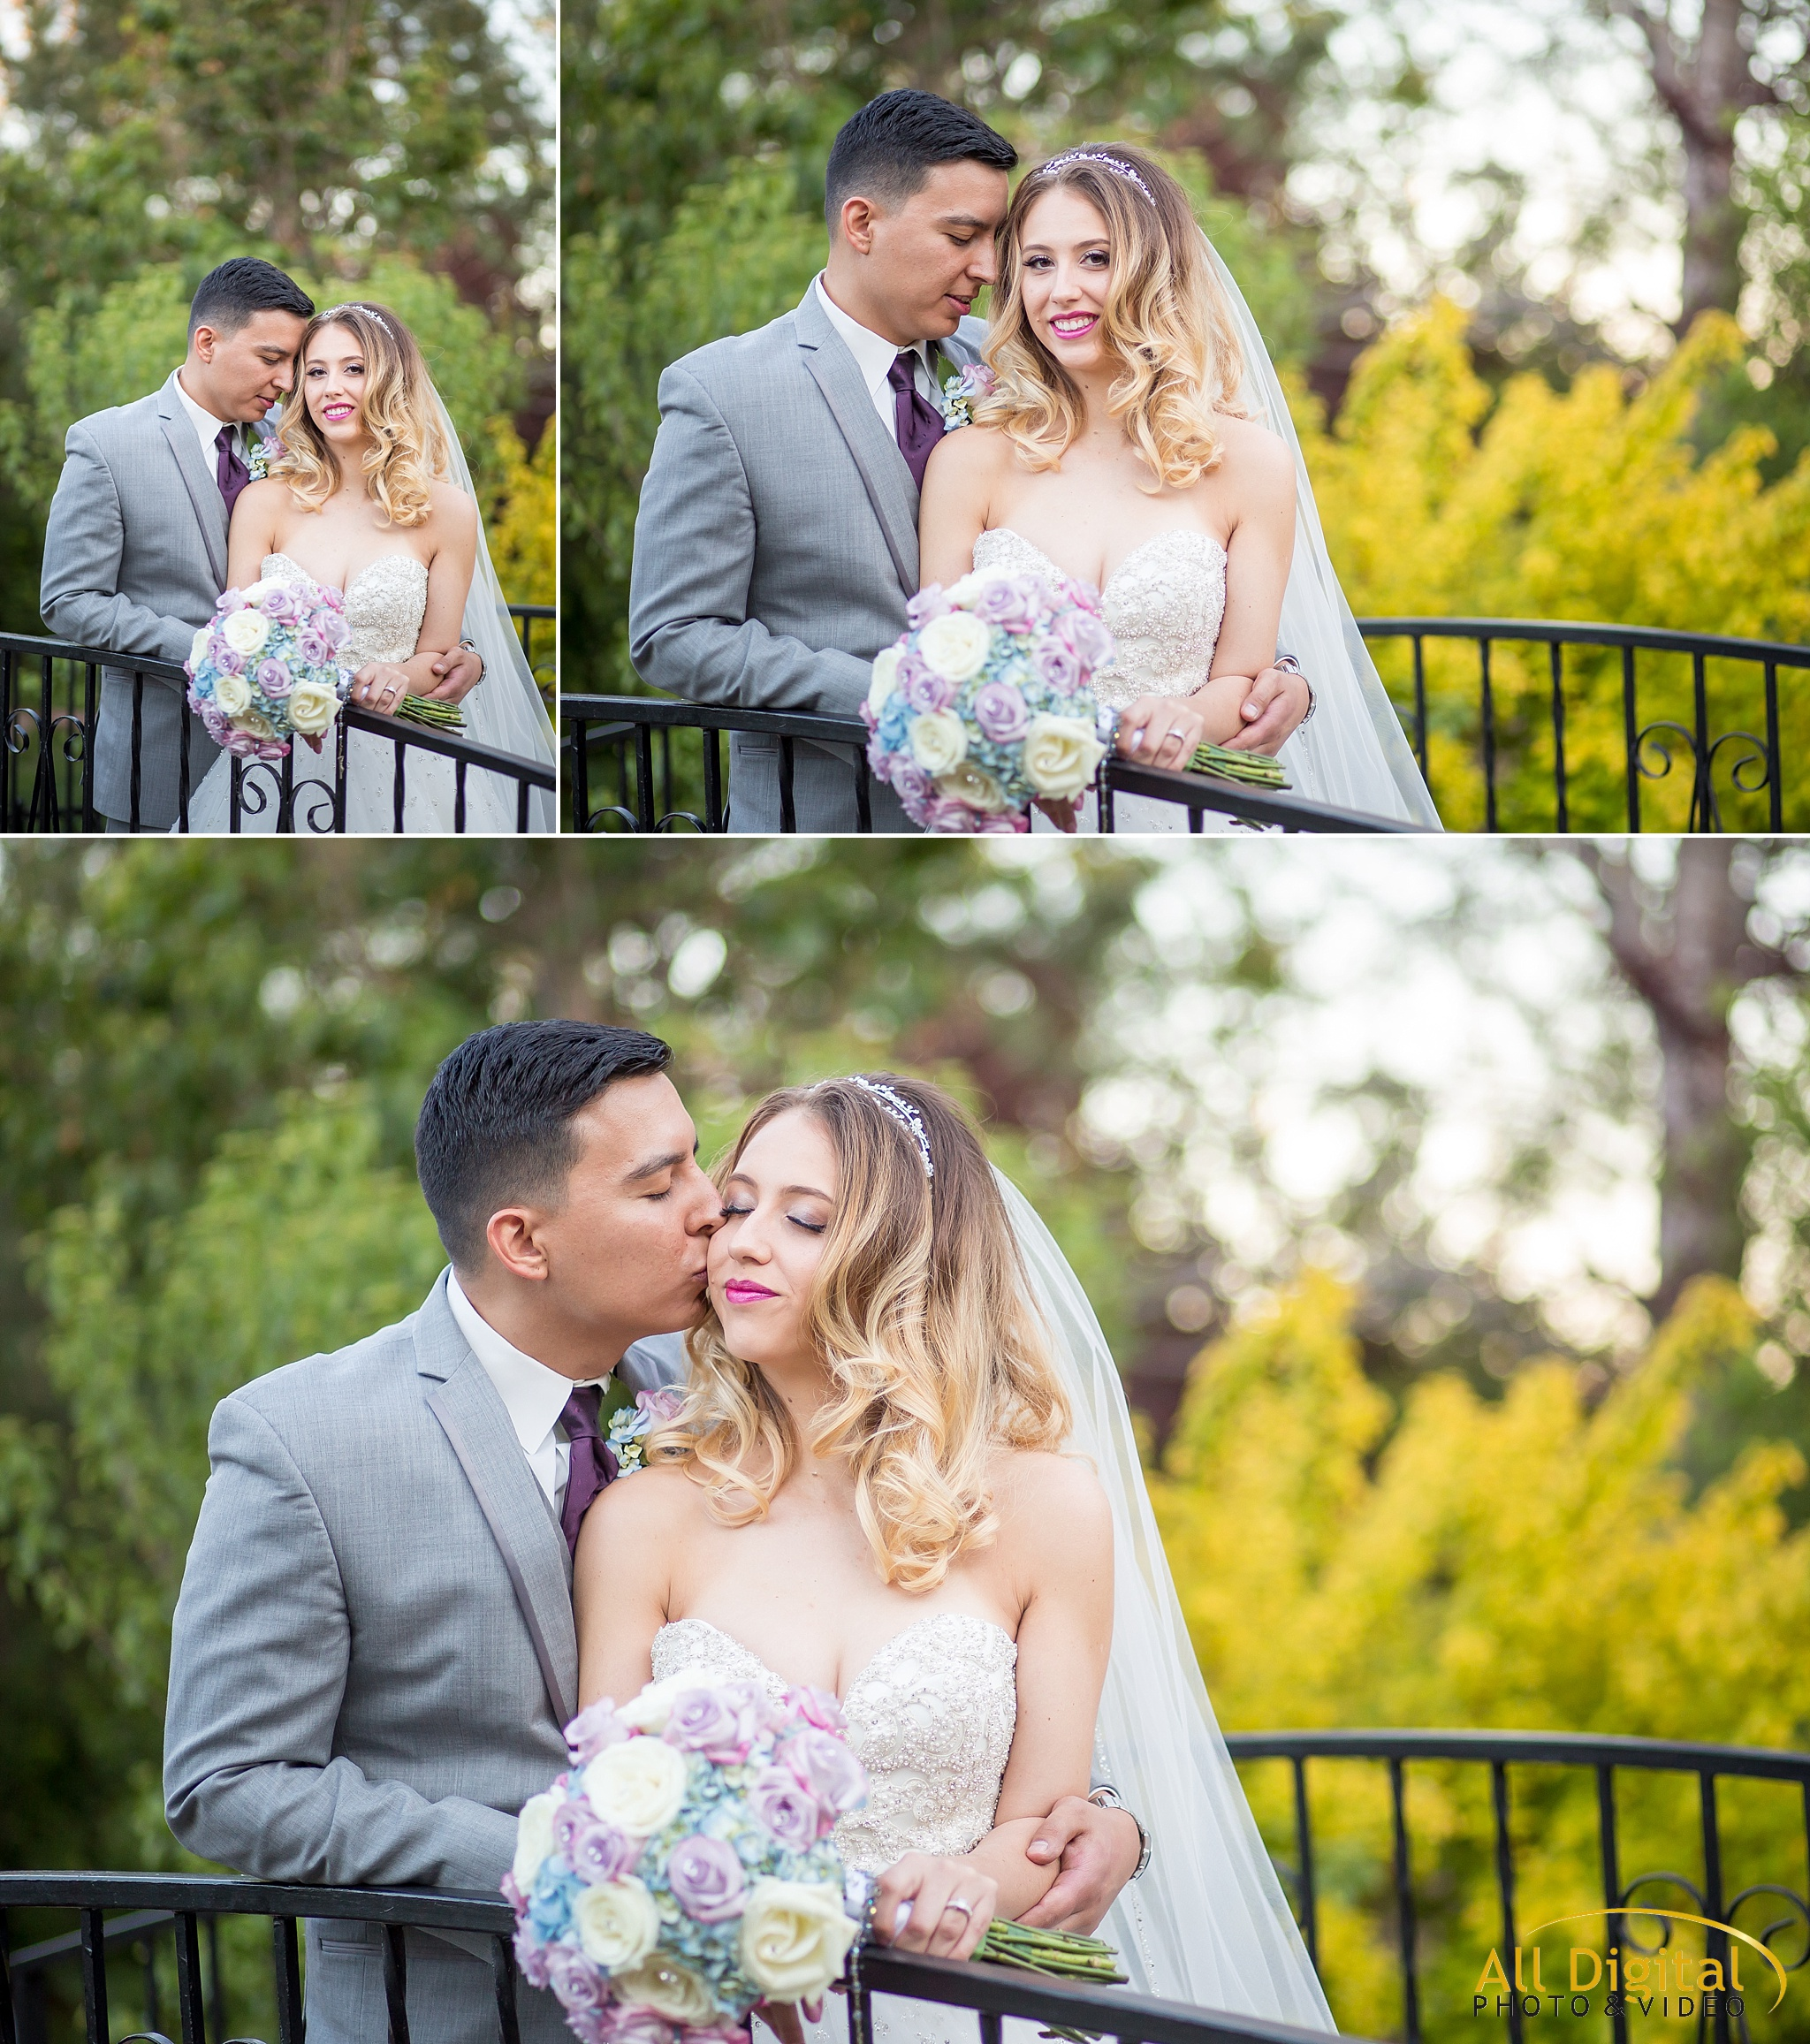 Bride & Groom romantic portraits at Stonebrook Manor.